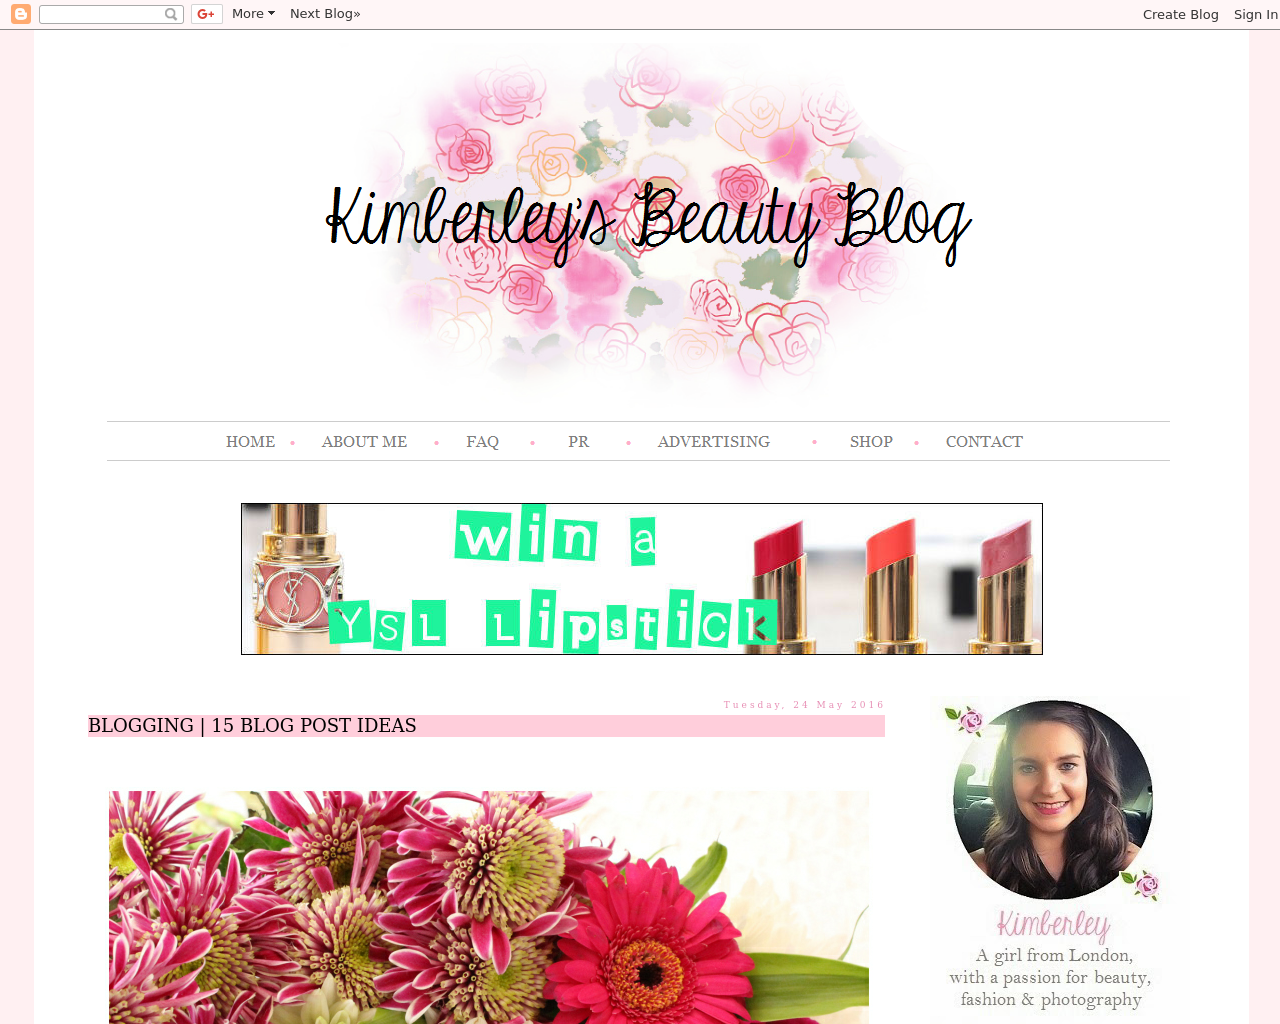 Kimberly's-Beauty-Blog-Advertising-Reviews-Pricing